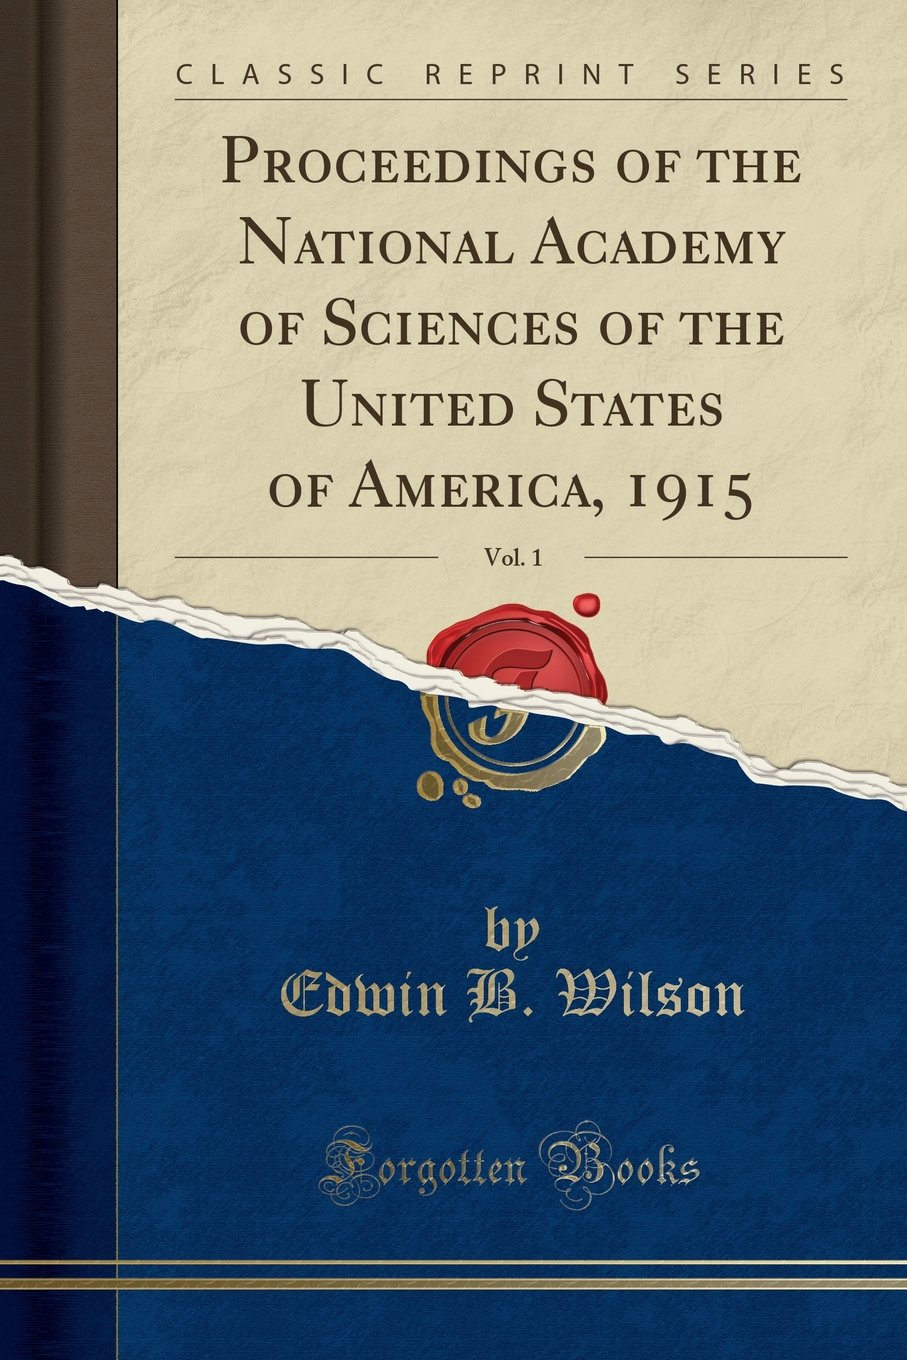 Proceedings of the National Academy of Sciences of the United States of America, 1915, Vol. 1 (Classic Reprint) pdf